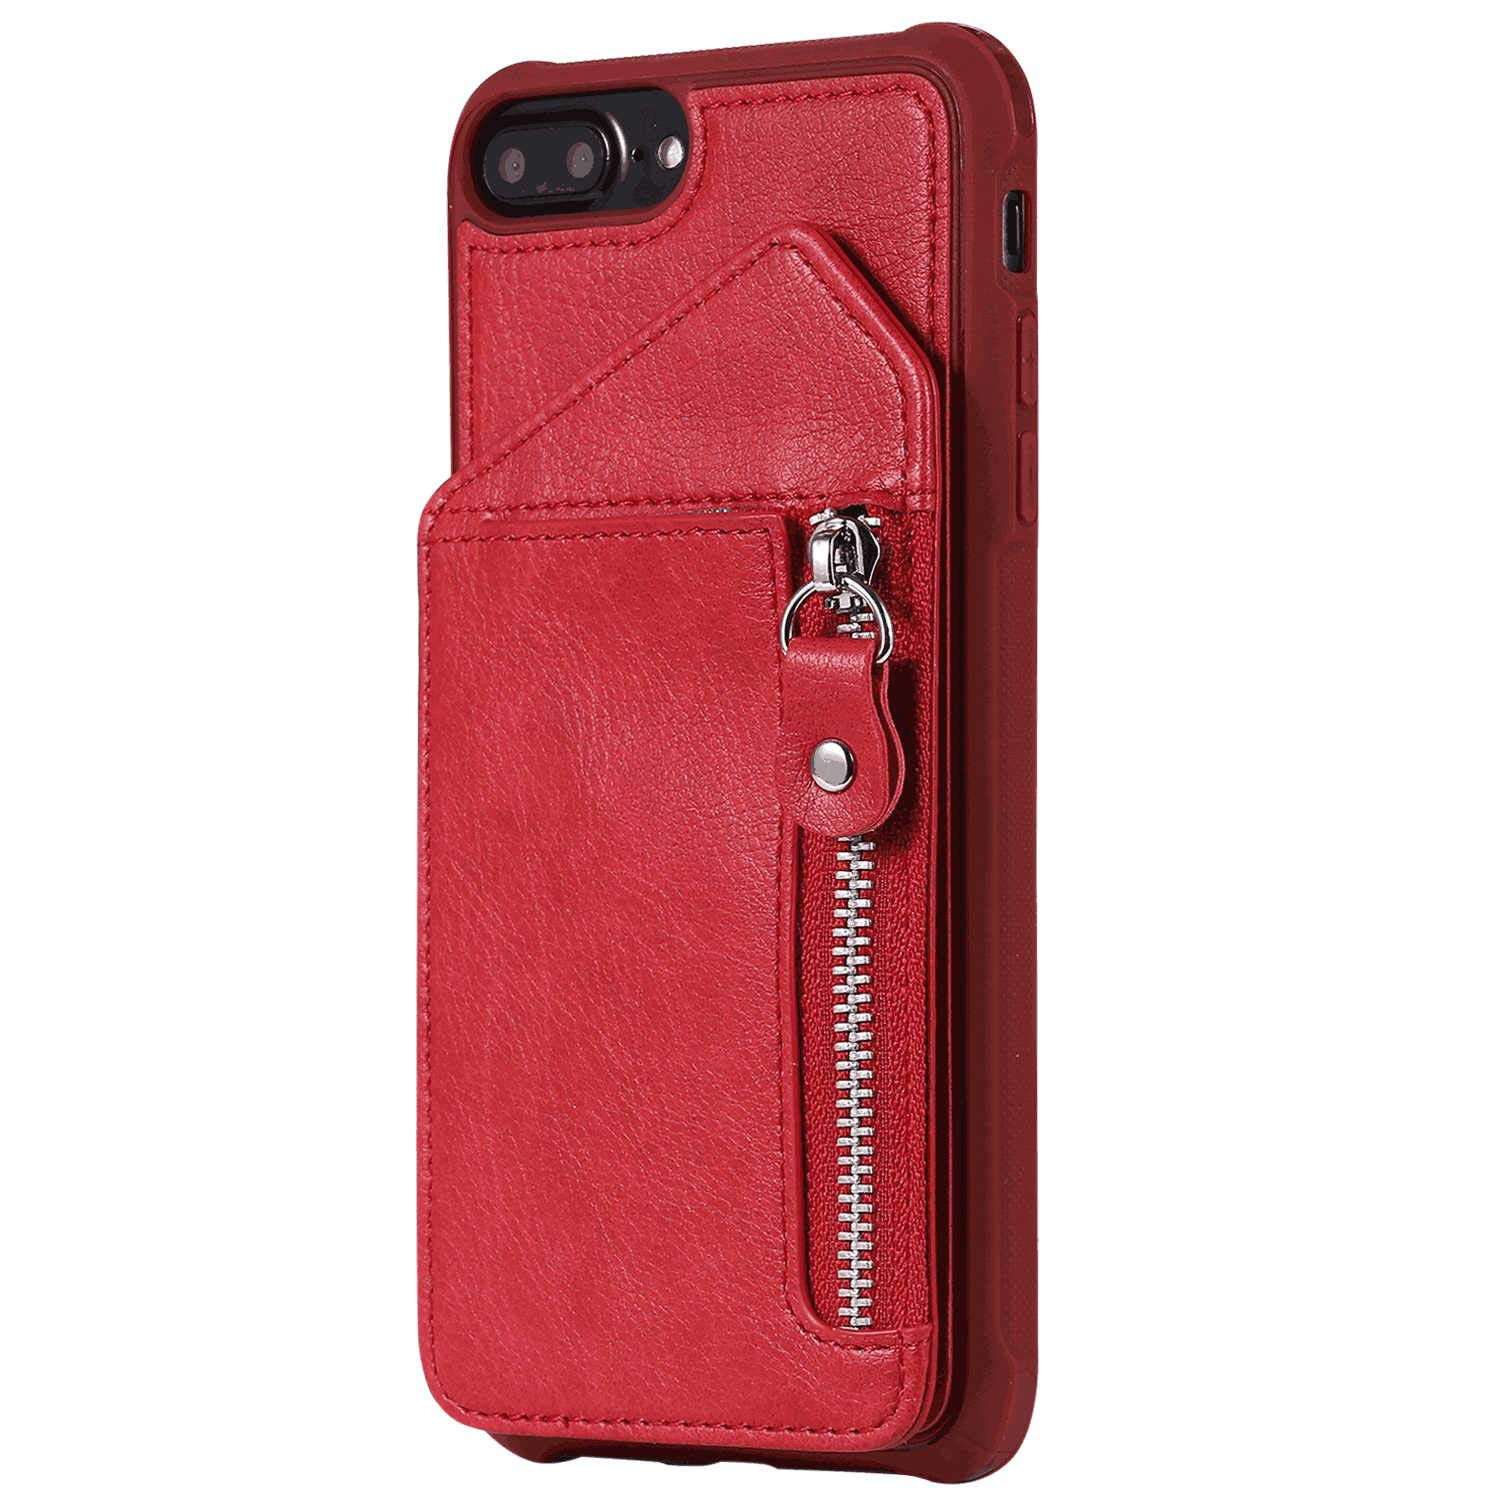 Samsung Galaxy Note9 Flip Case Cover for Samsung Galaxy Note9 Leather Kickstand Luxury Business Card Holders Mobile Phone Cover with Free Waterproof-Bag Grey4